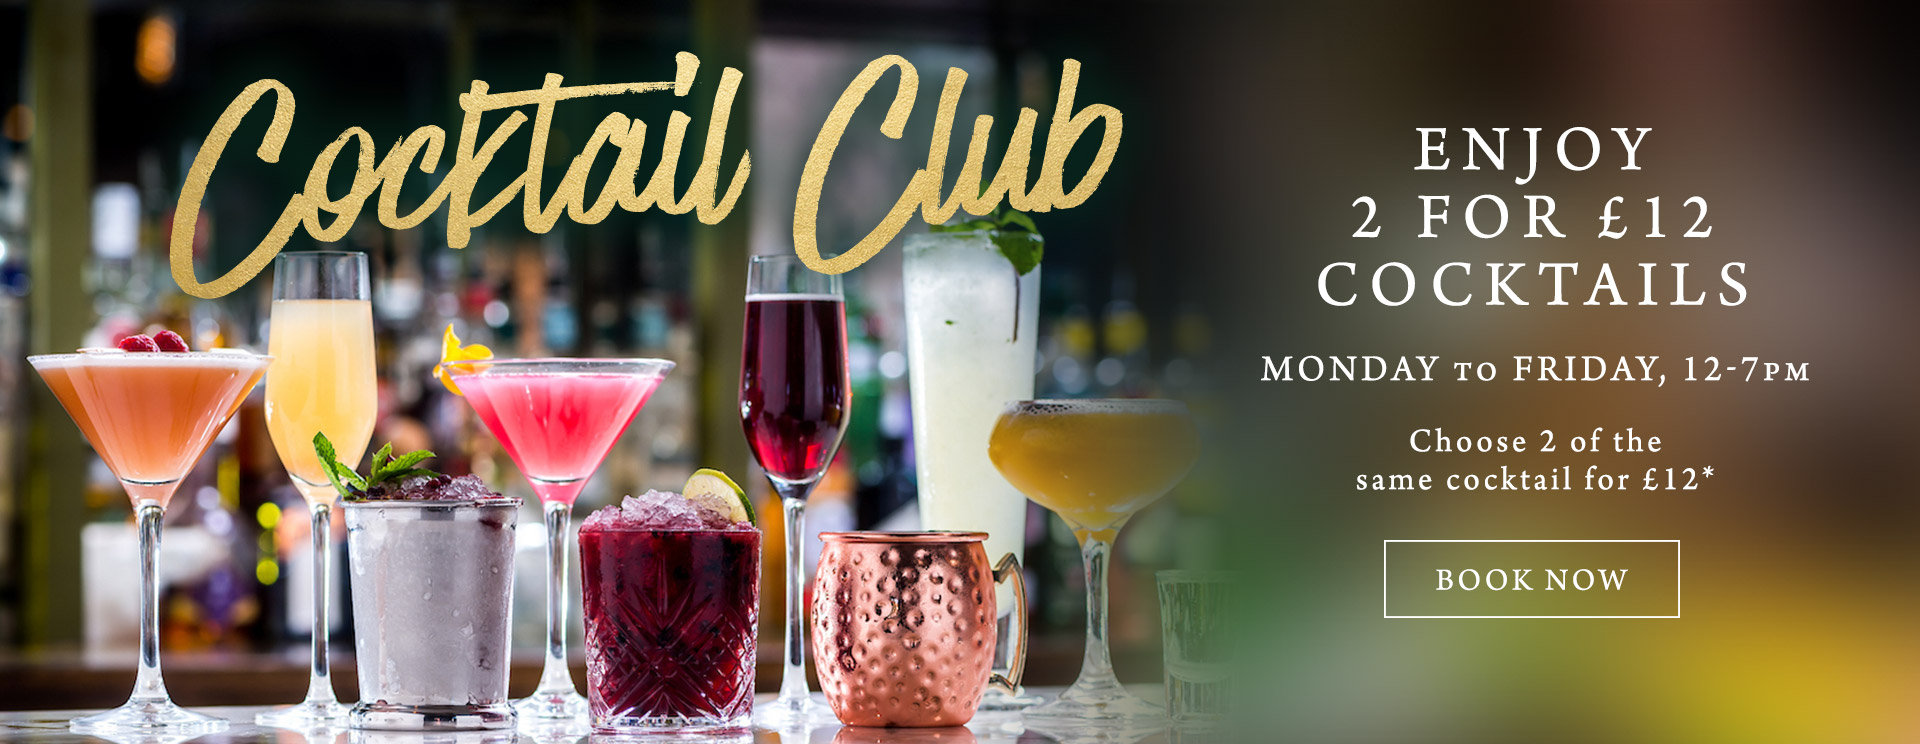 2 for £12 cocktails at The George